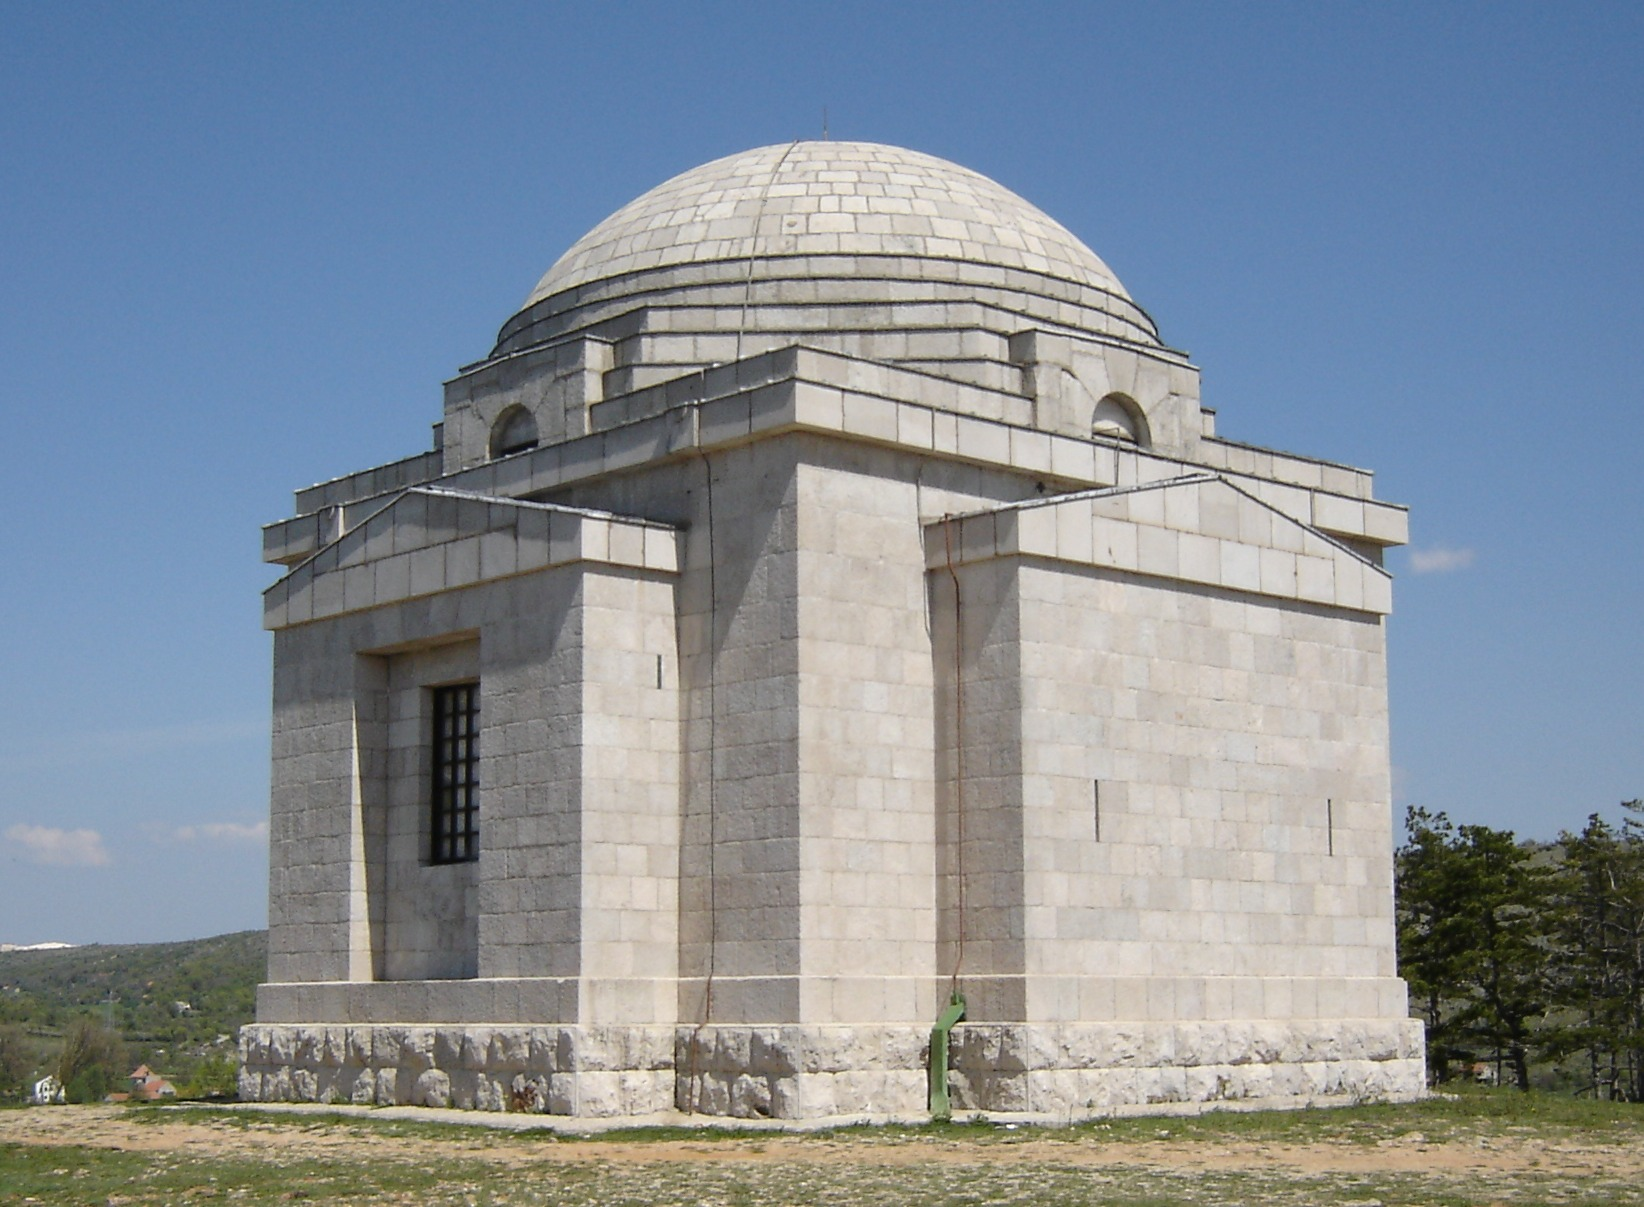 File:Mestrovic mausoleum.jpg - Wikipedia